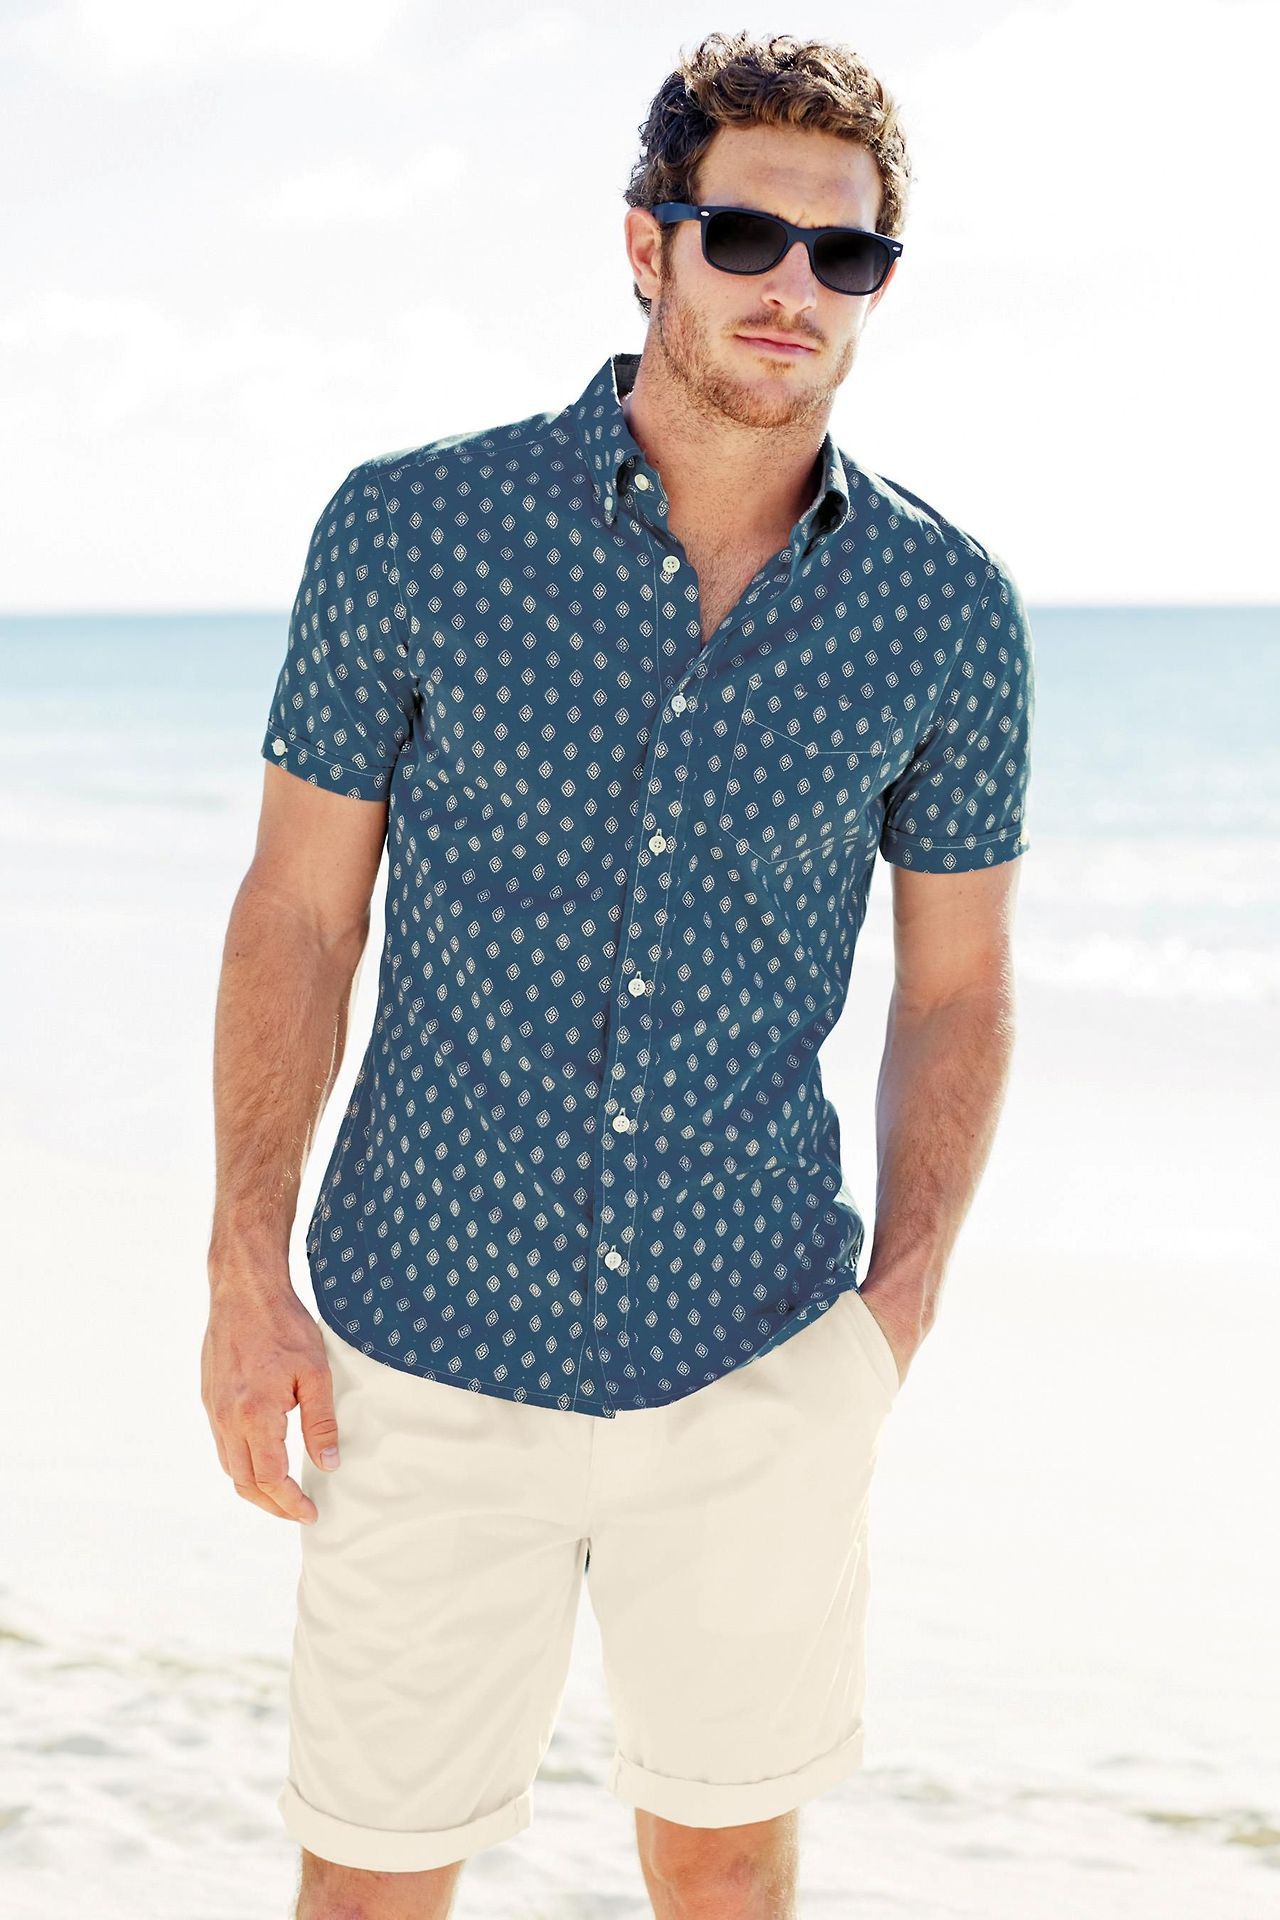 0fda1176c55d slate blue patterned shirt. cream colored shorts. shades. cool ...